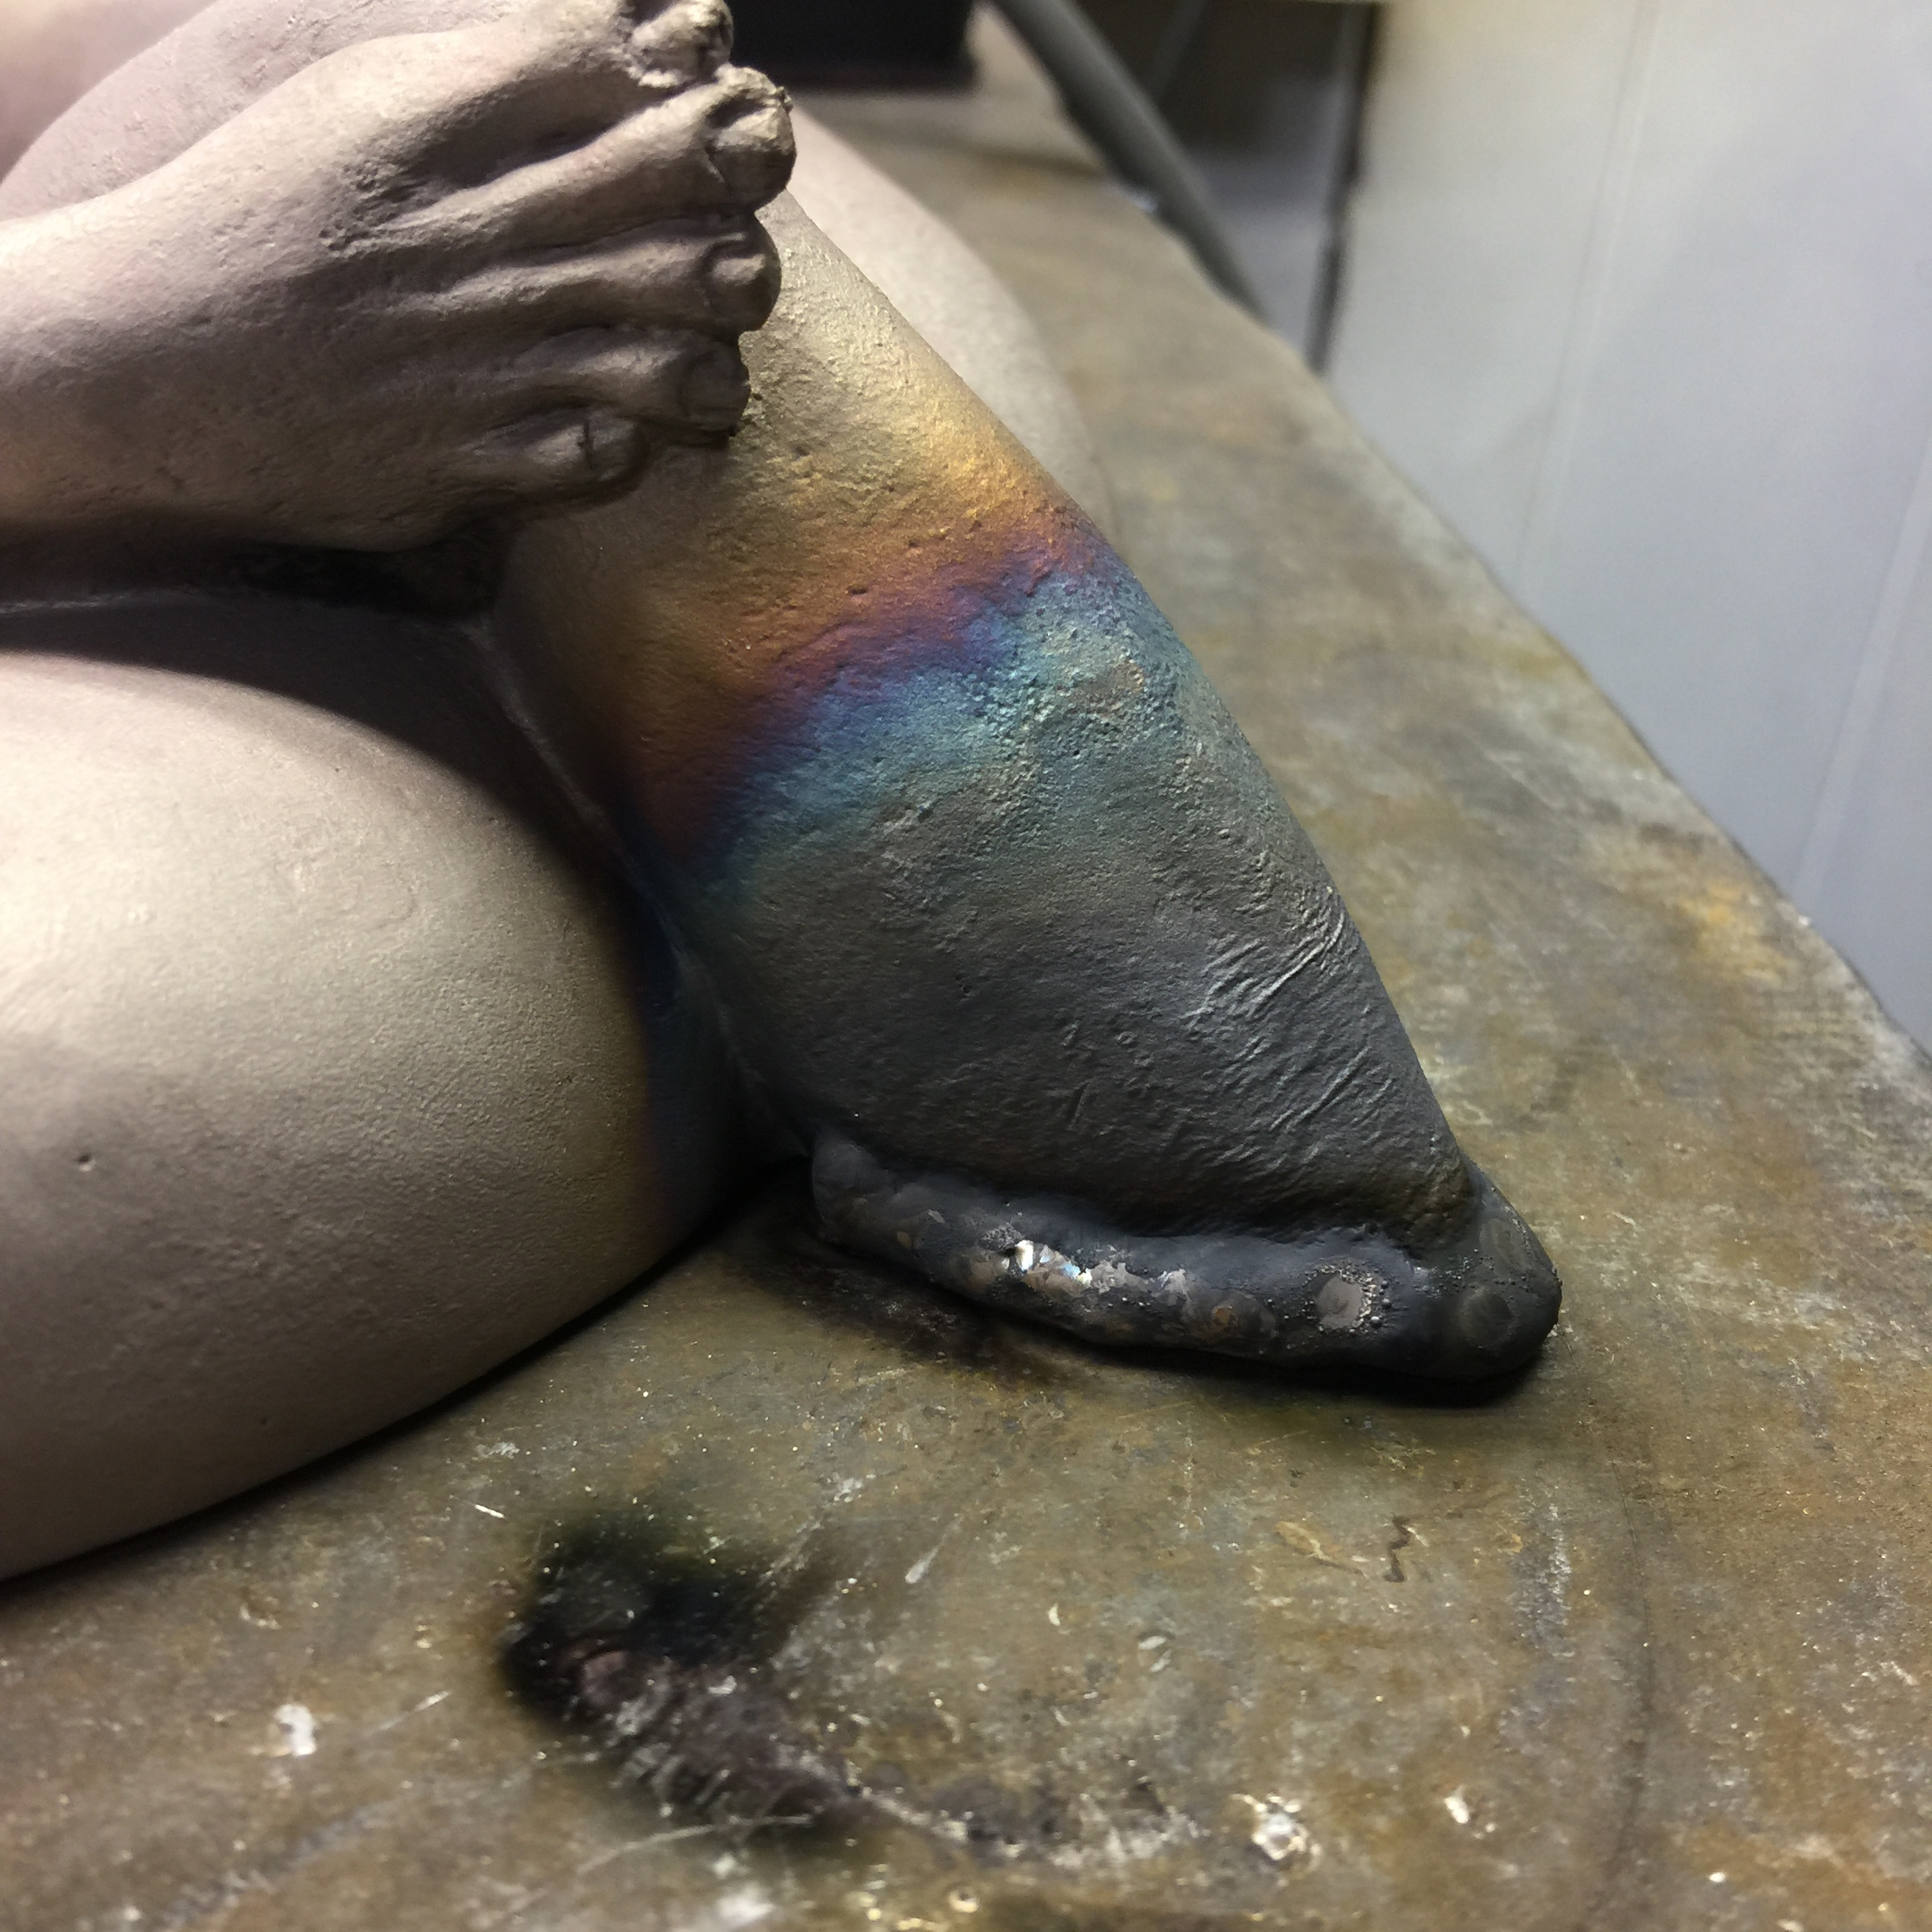 The press along with some hammering got the perimeter of the tube down, but the arm & leg shrunk in the fire, so I'm adding bronze by TIG welding.